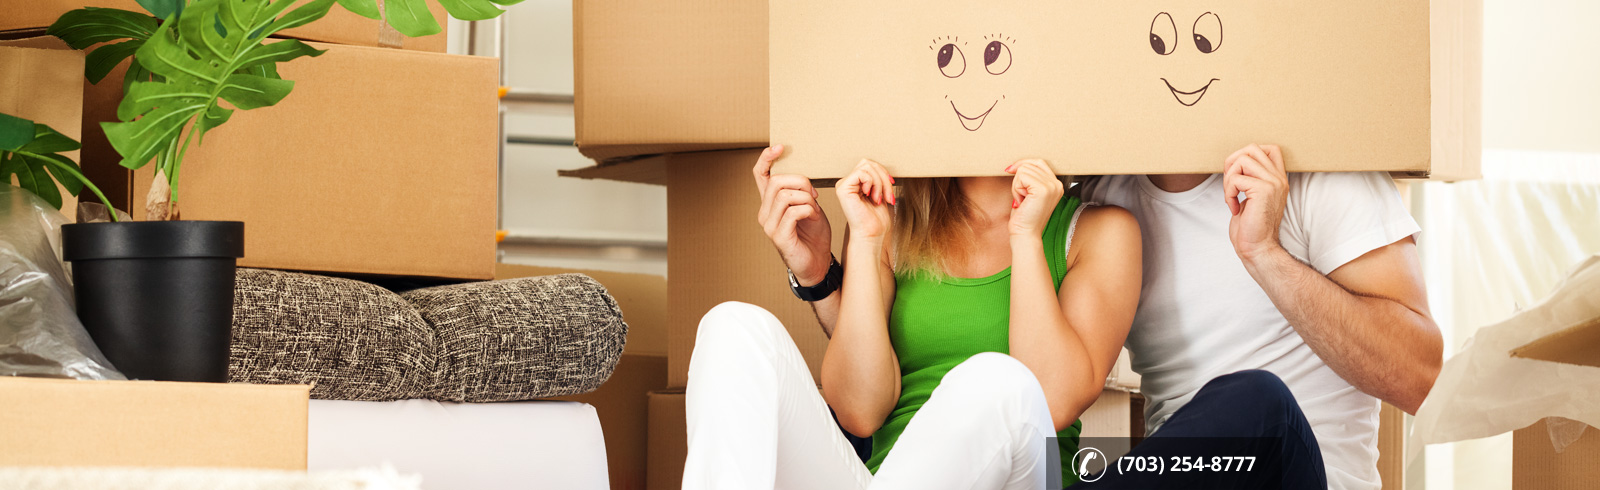 Best Client Services Offered by Allstate Movers Northern VA